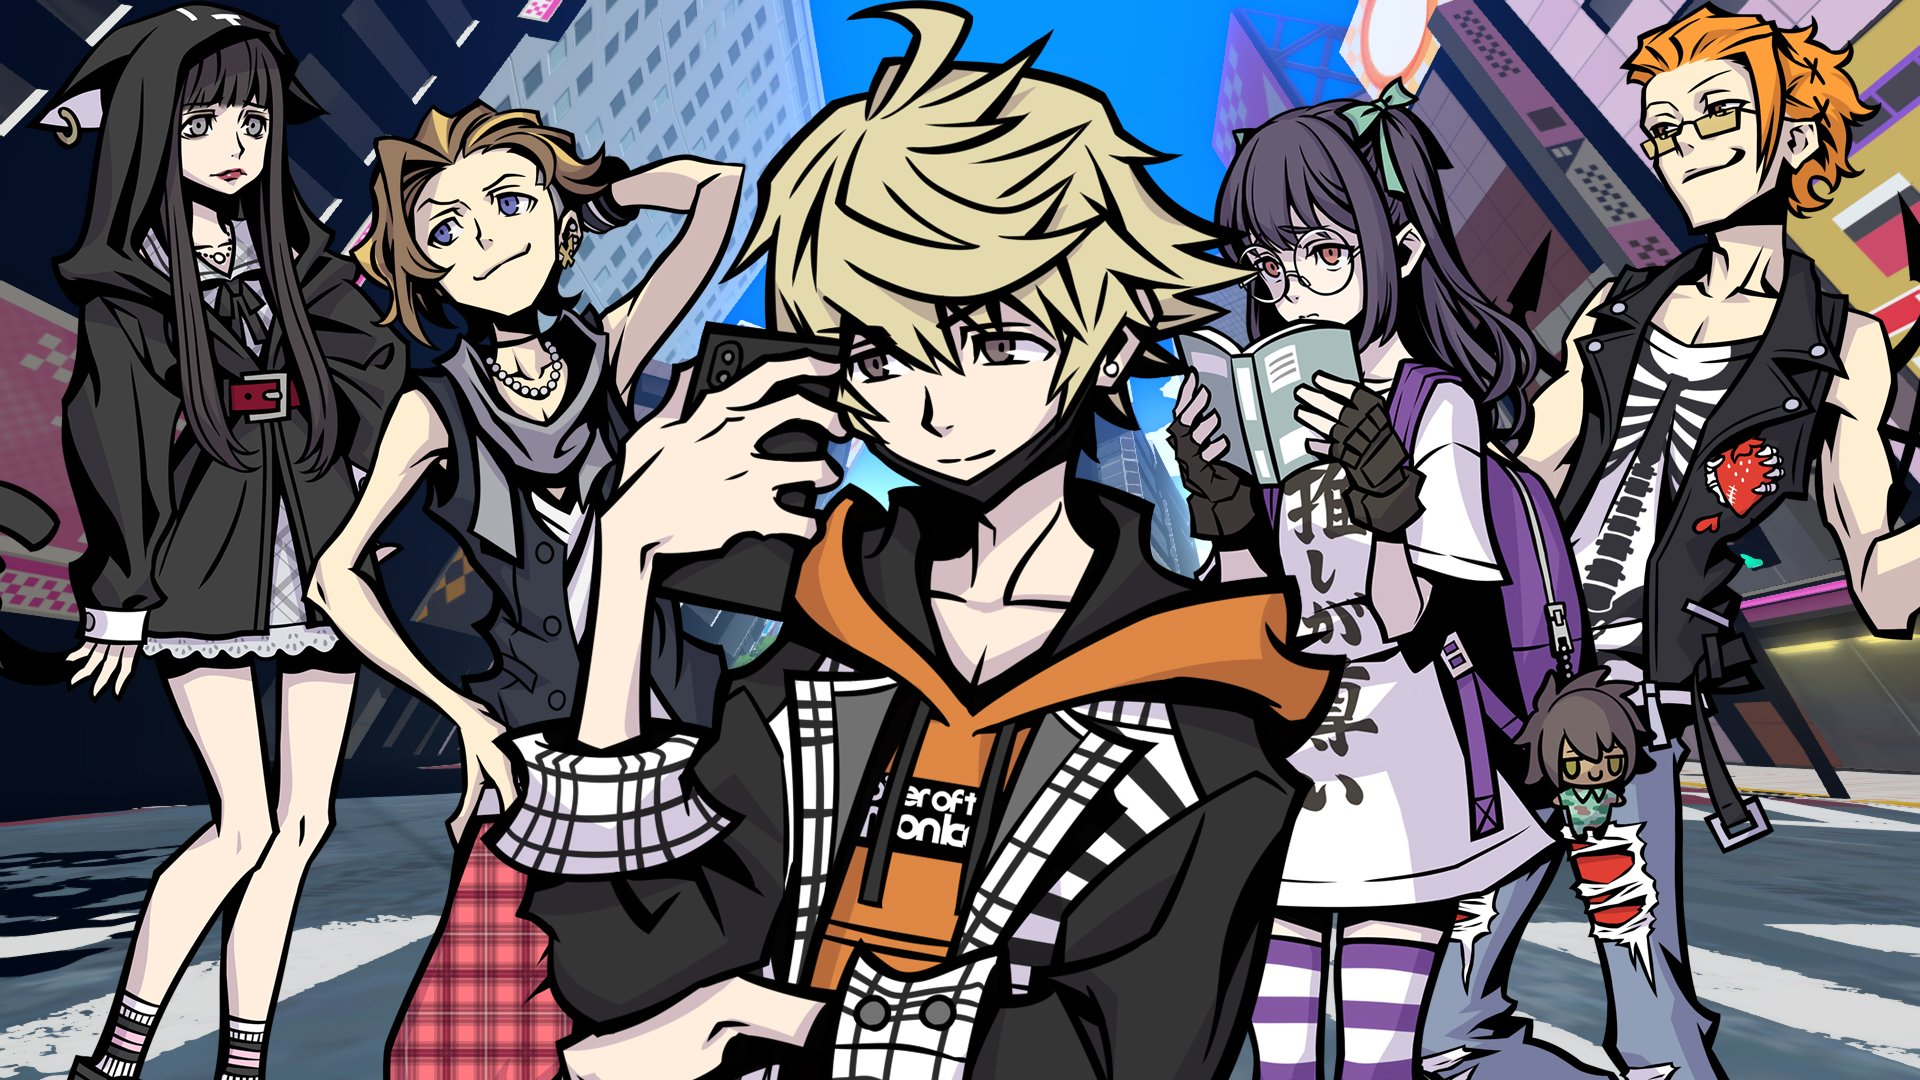 NEO The World Ends with You 1452021 1